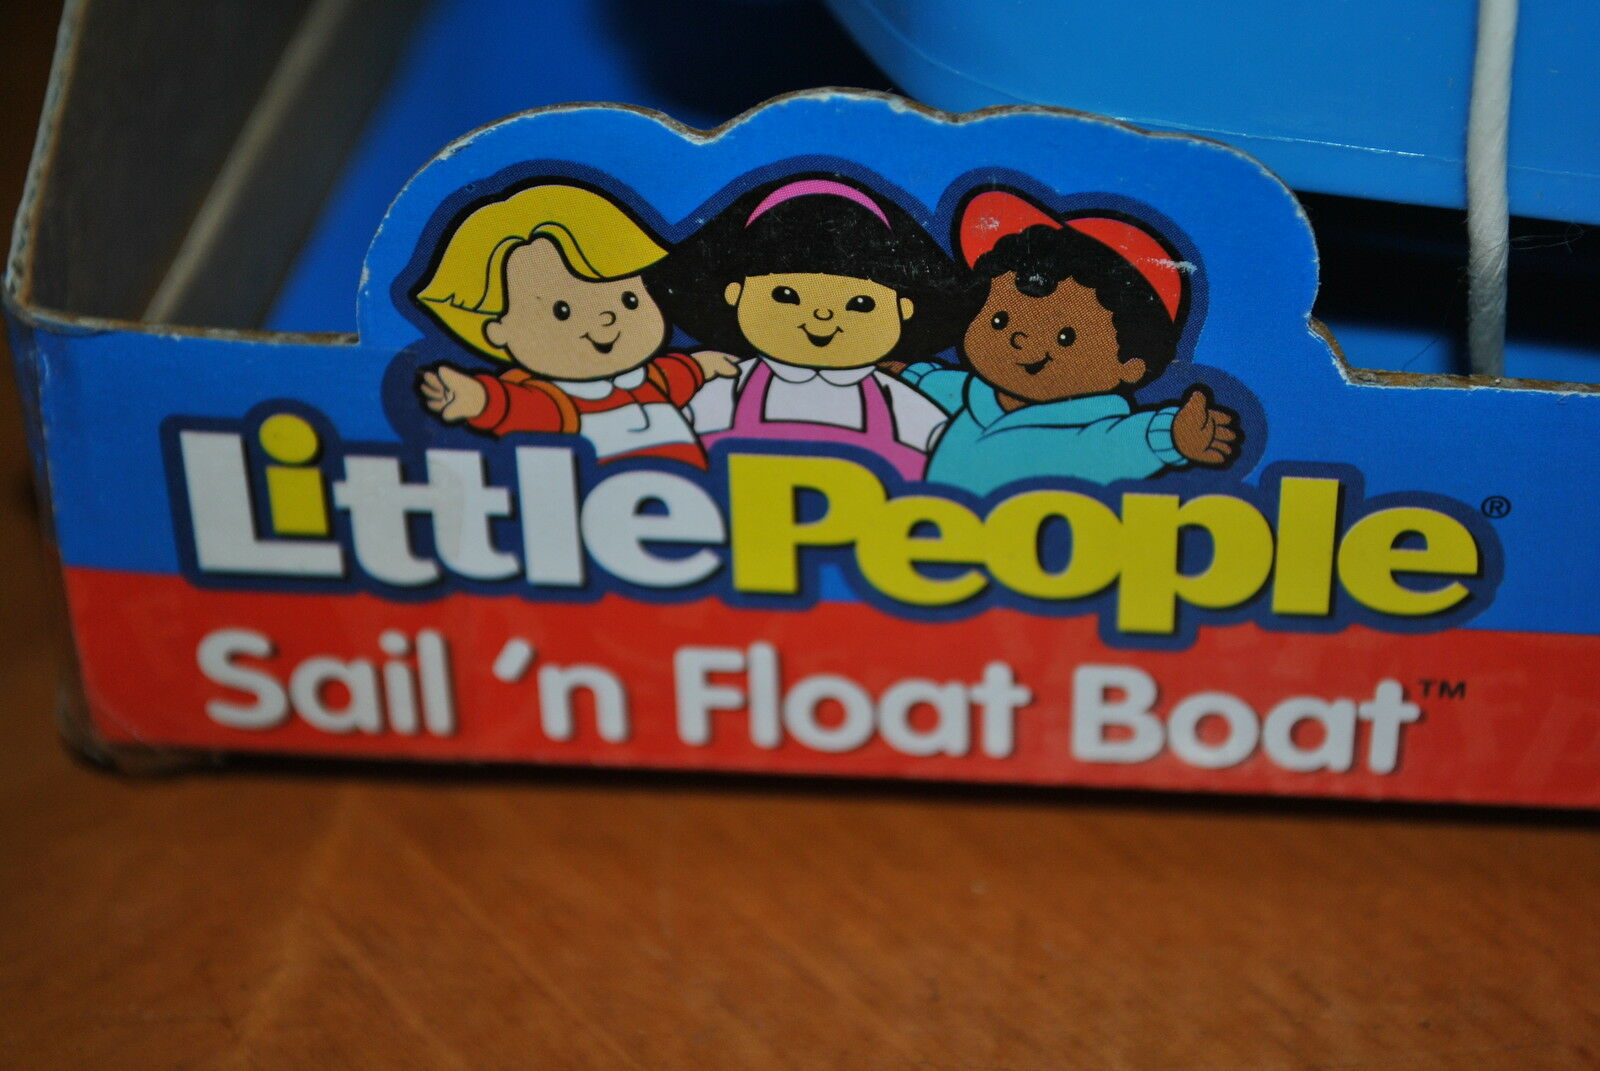 FISHER PRICE LITTLE PEOPLE SAIL 'N FLOAT BOAT TARGET TARGET TARGET EXCLUSIVE ONLY 1 ON E-BAY 9c8bb8